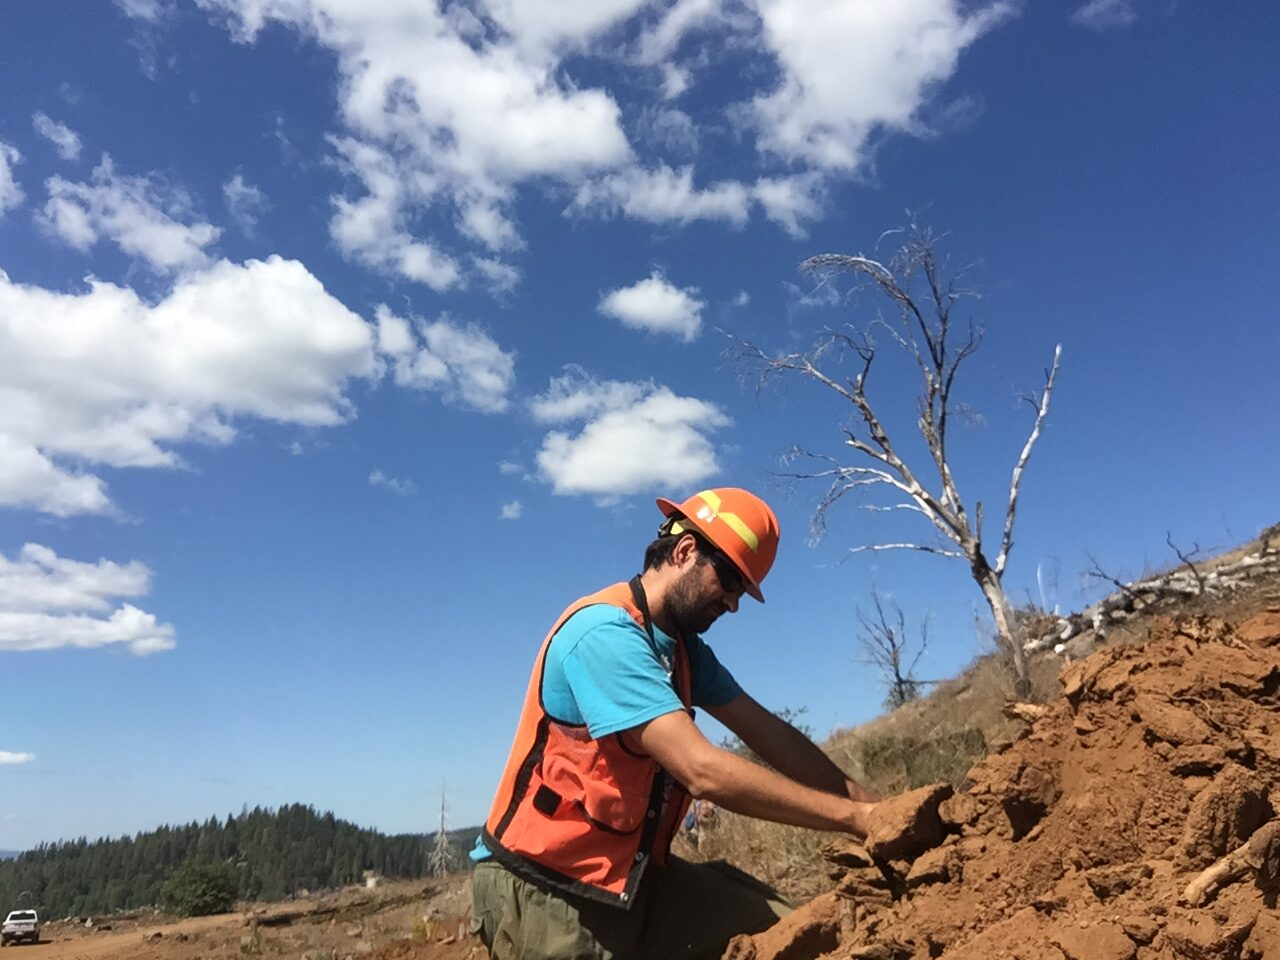 Post of the month 06/2020: <br/>Postfire managing strategies in Mediterranean forest ecosystems: Lessons learned from research works developed at south of Spain